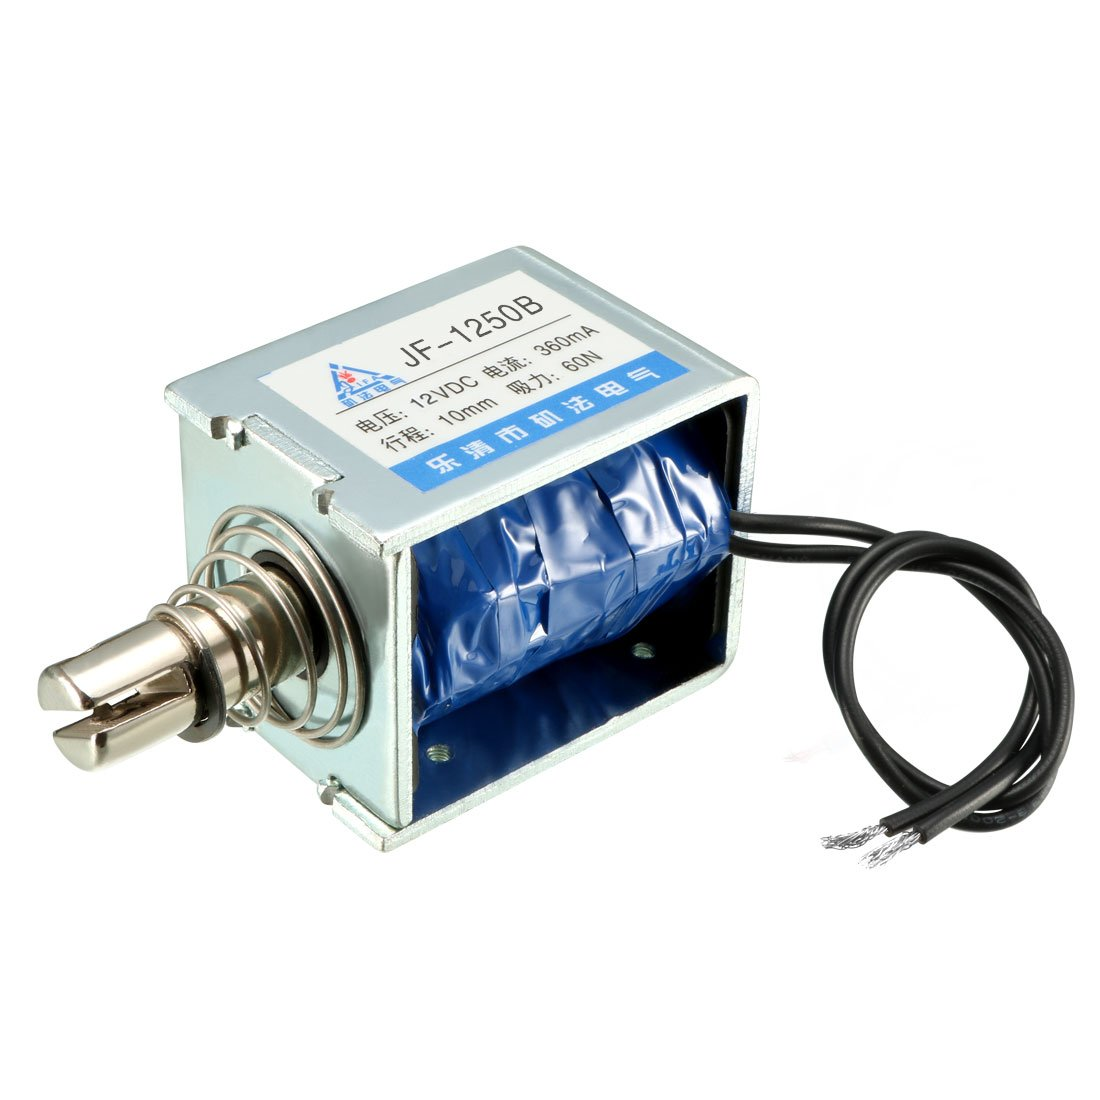 uxcell JF-1250B DC 12V 360mA 60N 10mm Pull Push Type Open Frame Linear Motion Solenoid Electromagnet